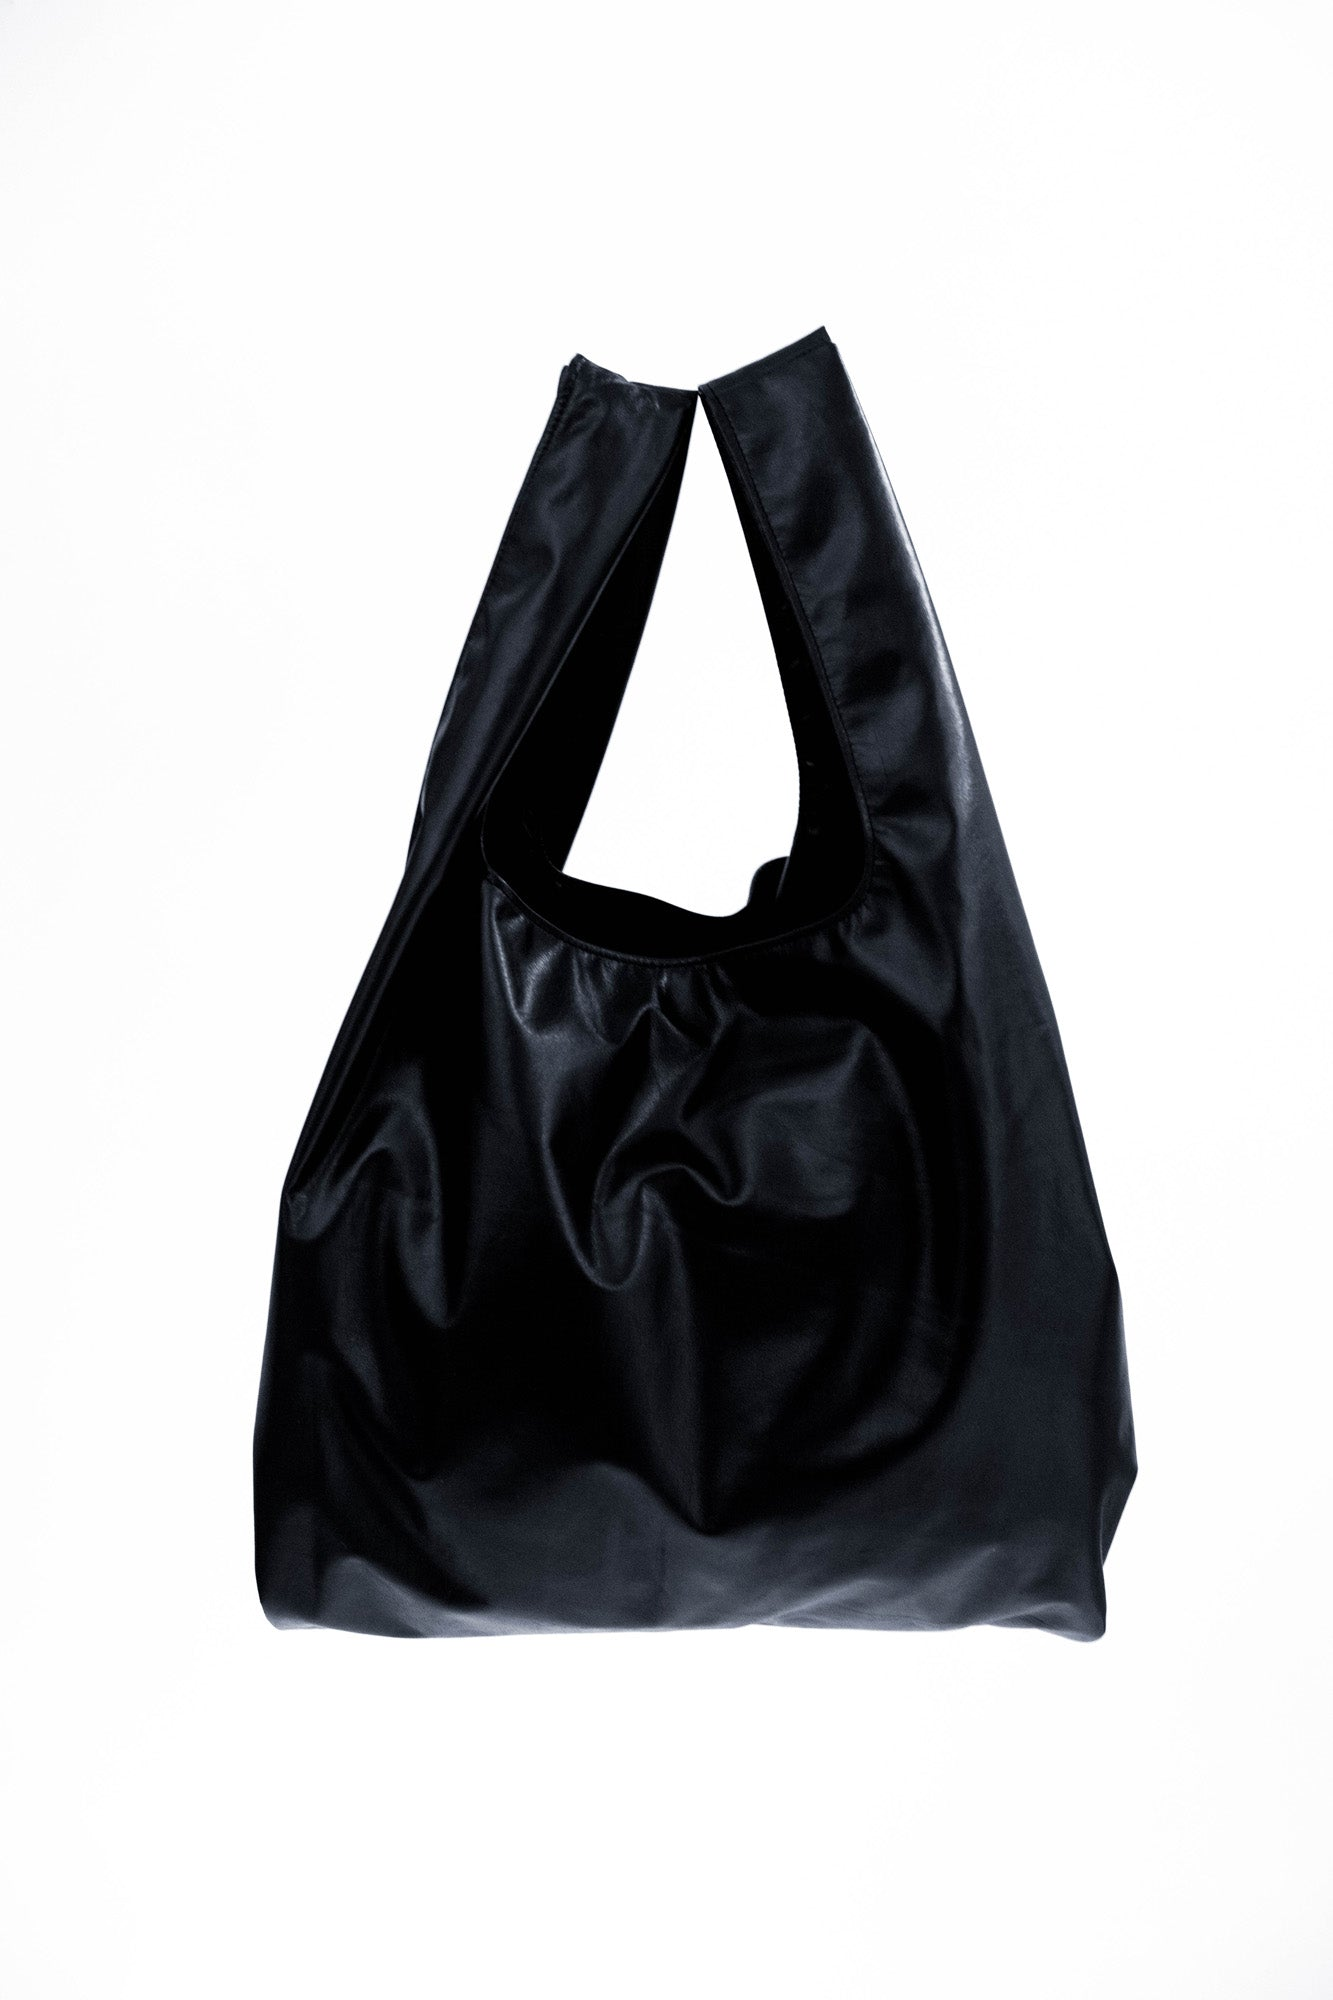 NOT SO PLASTIC BAG - Large Black Plonge Leather Tote